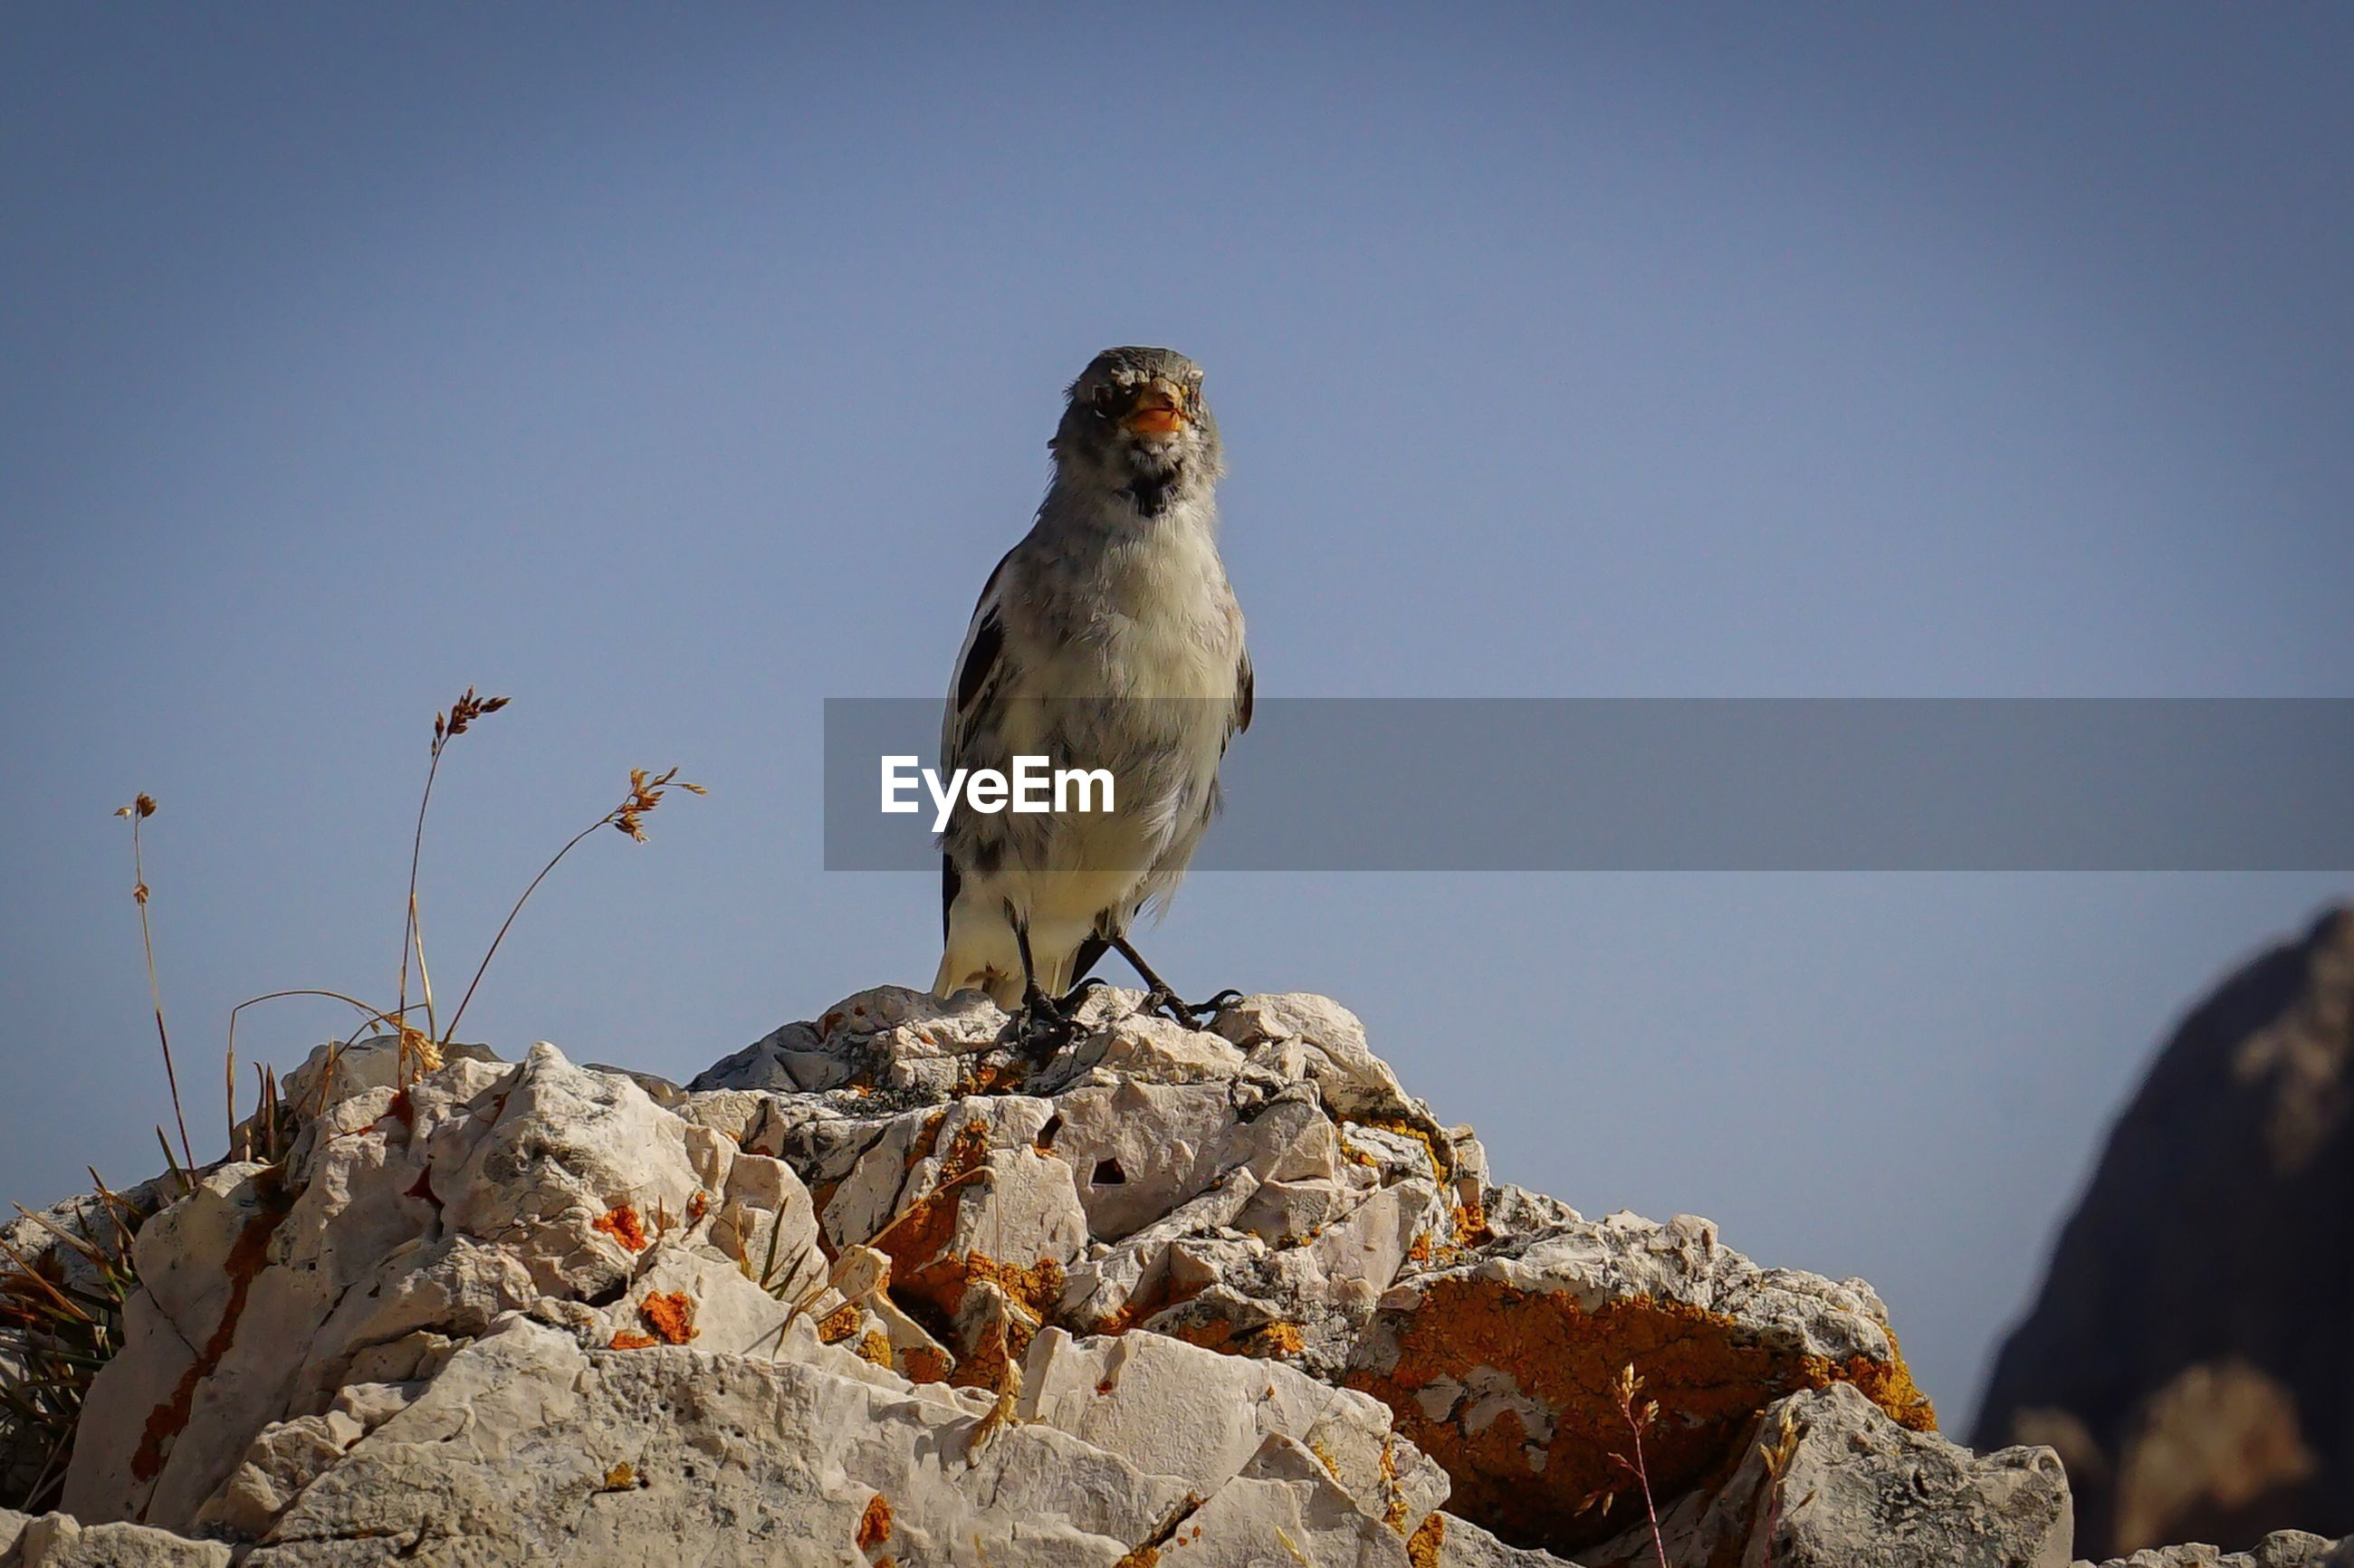 CLOSE-UP OF BIRD PERCHING ON ROCK AGAINST CLEAR SKY